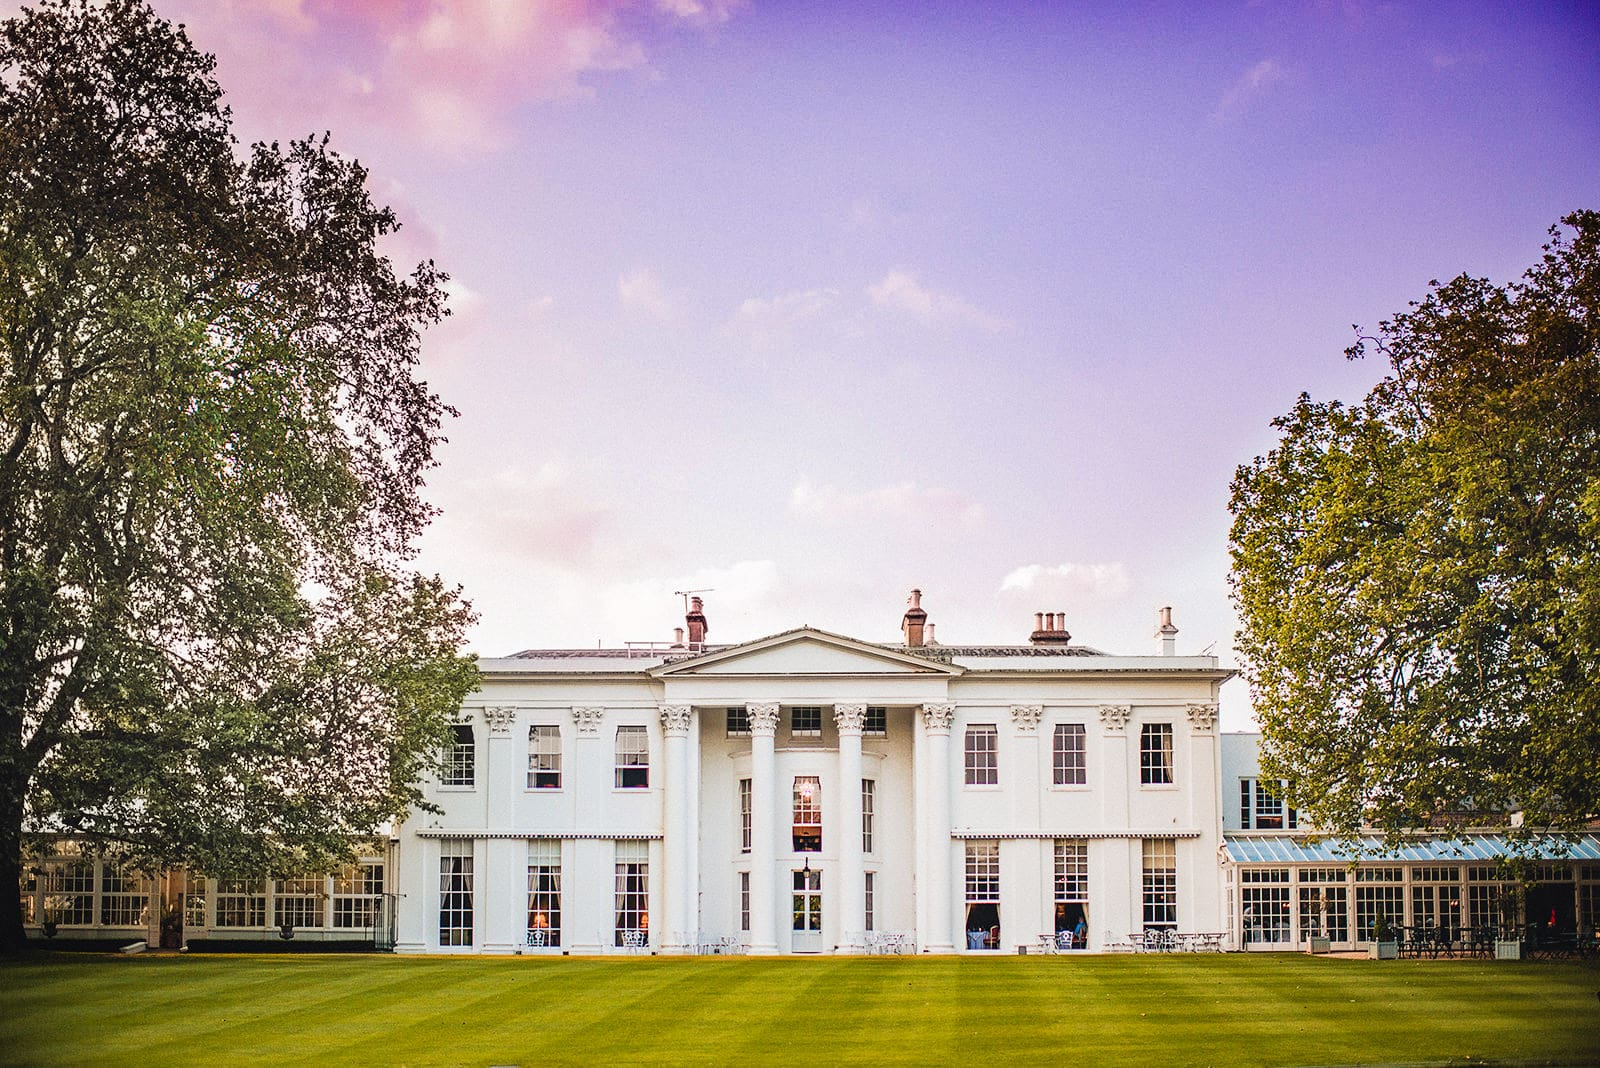 The Hurlingham Club and lawns with a pink sunset sky